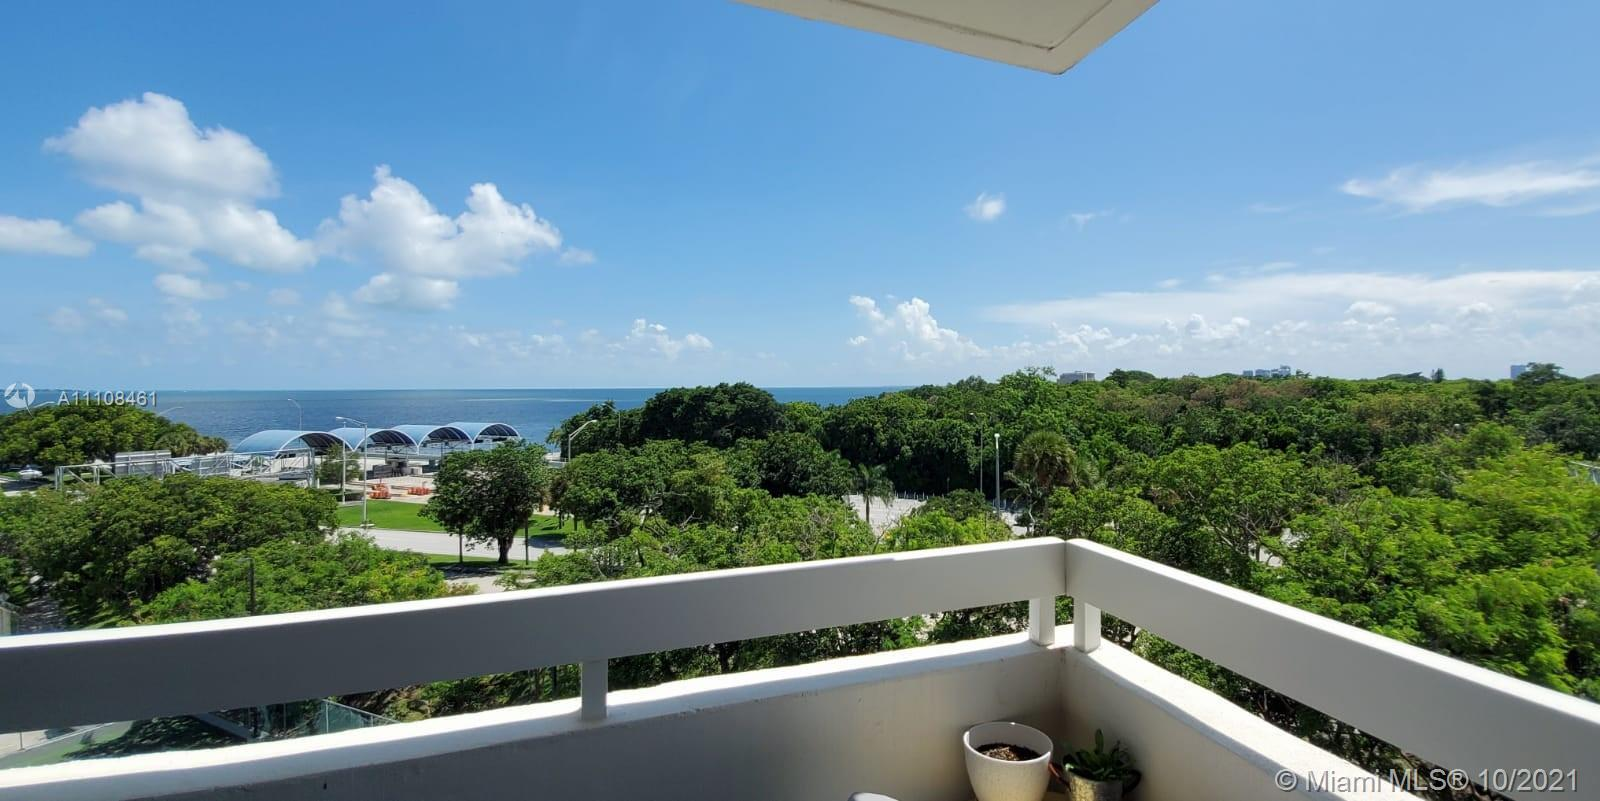 BEAUTIFUL APARTMENT OVERLOOKING THE SEA AND THE CITY, VERY WELL MAINTAINED, MARBLE FLOOR, NEW SHUTTE